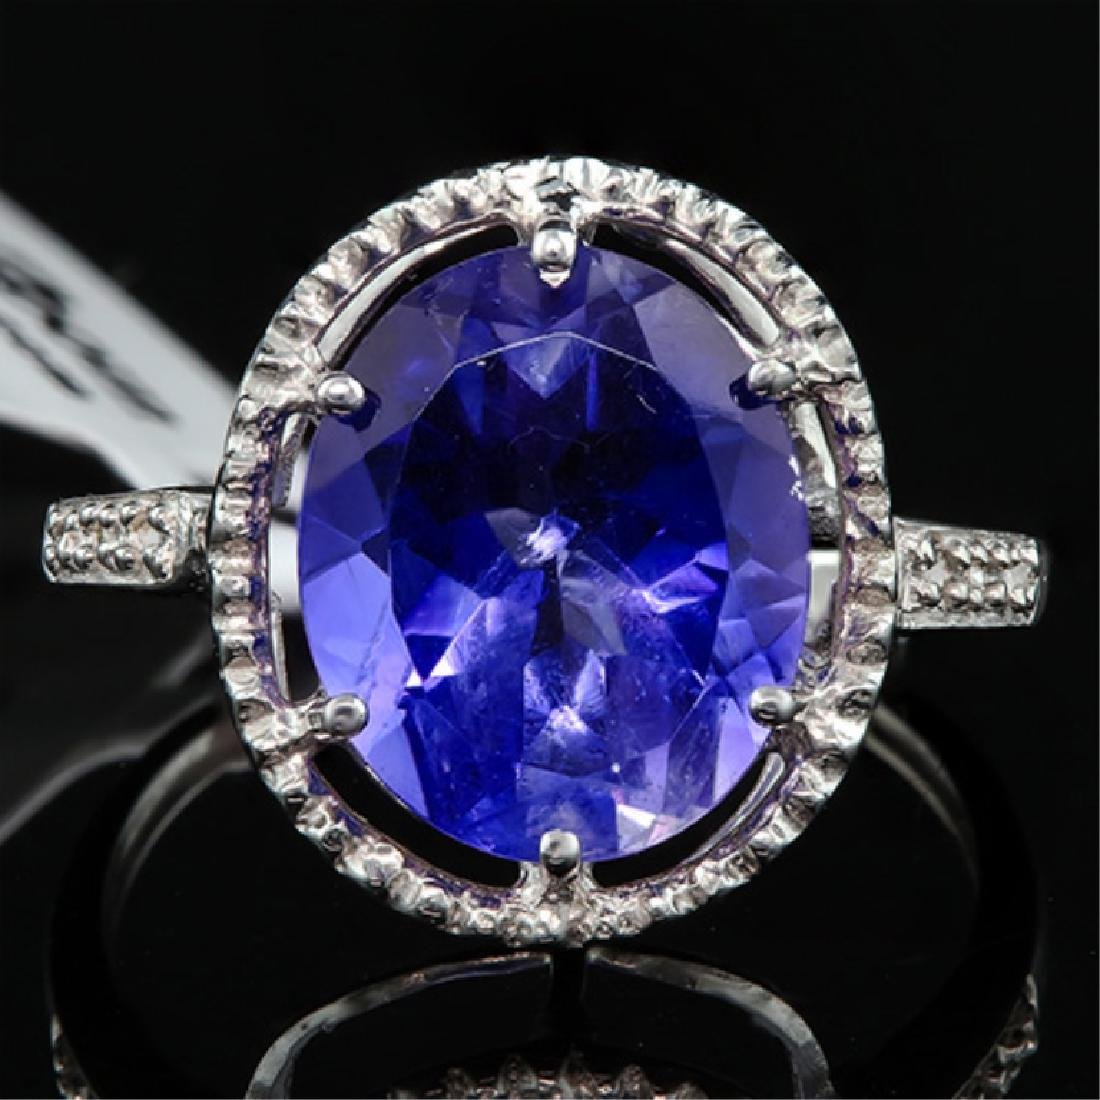 STUNNING 4CT OVAL TANZANITE/DIAMOND 10K GOLD RING